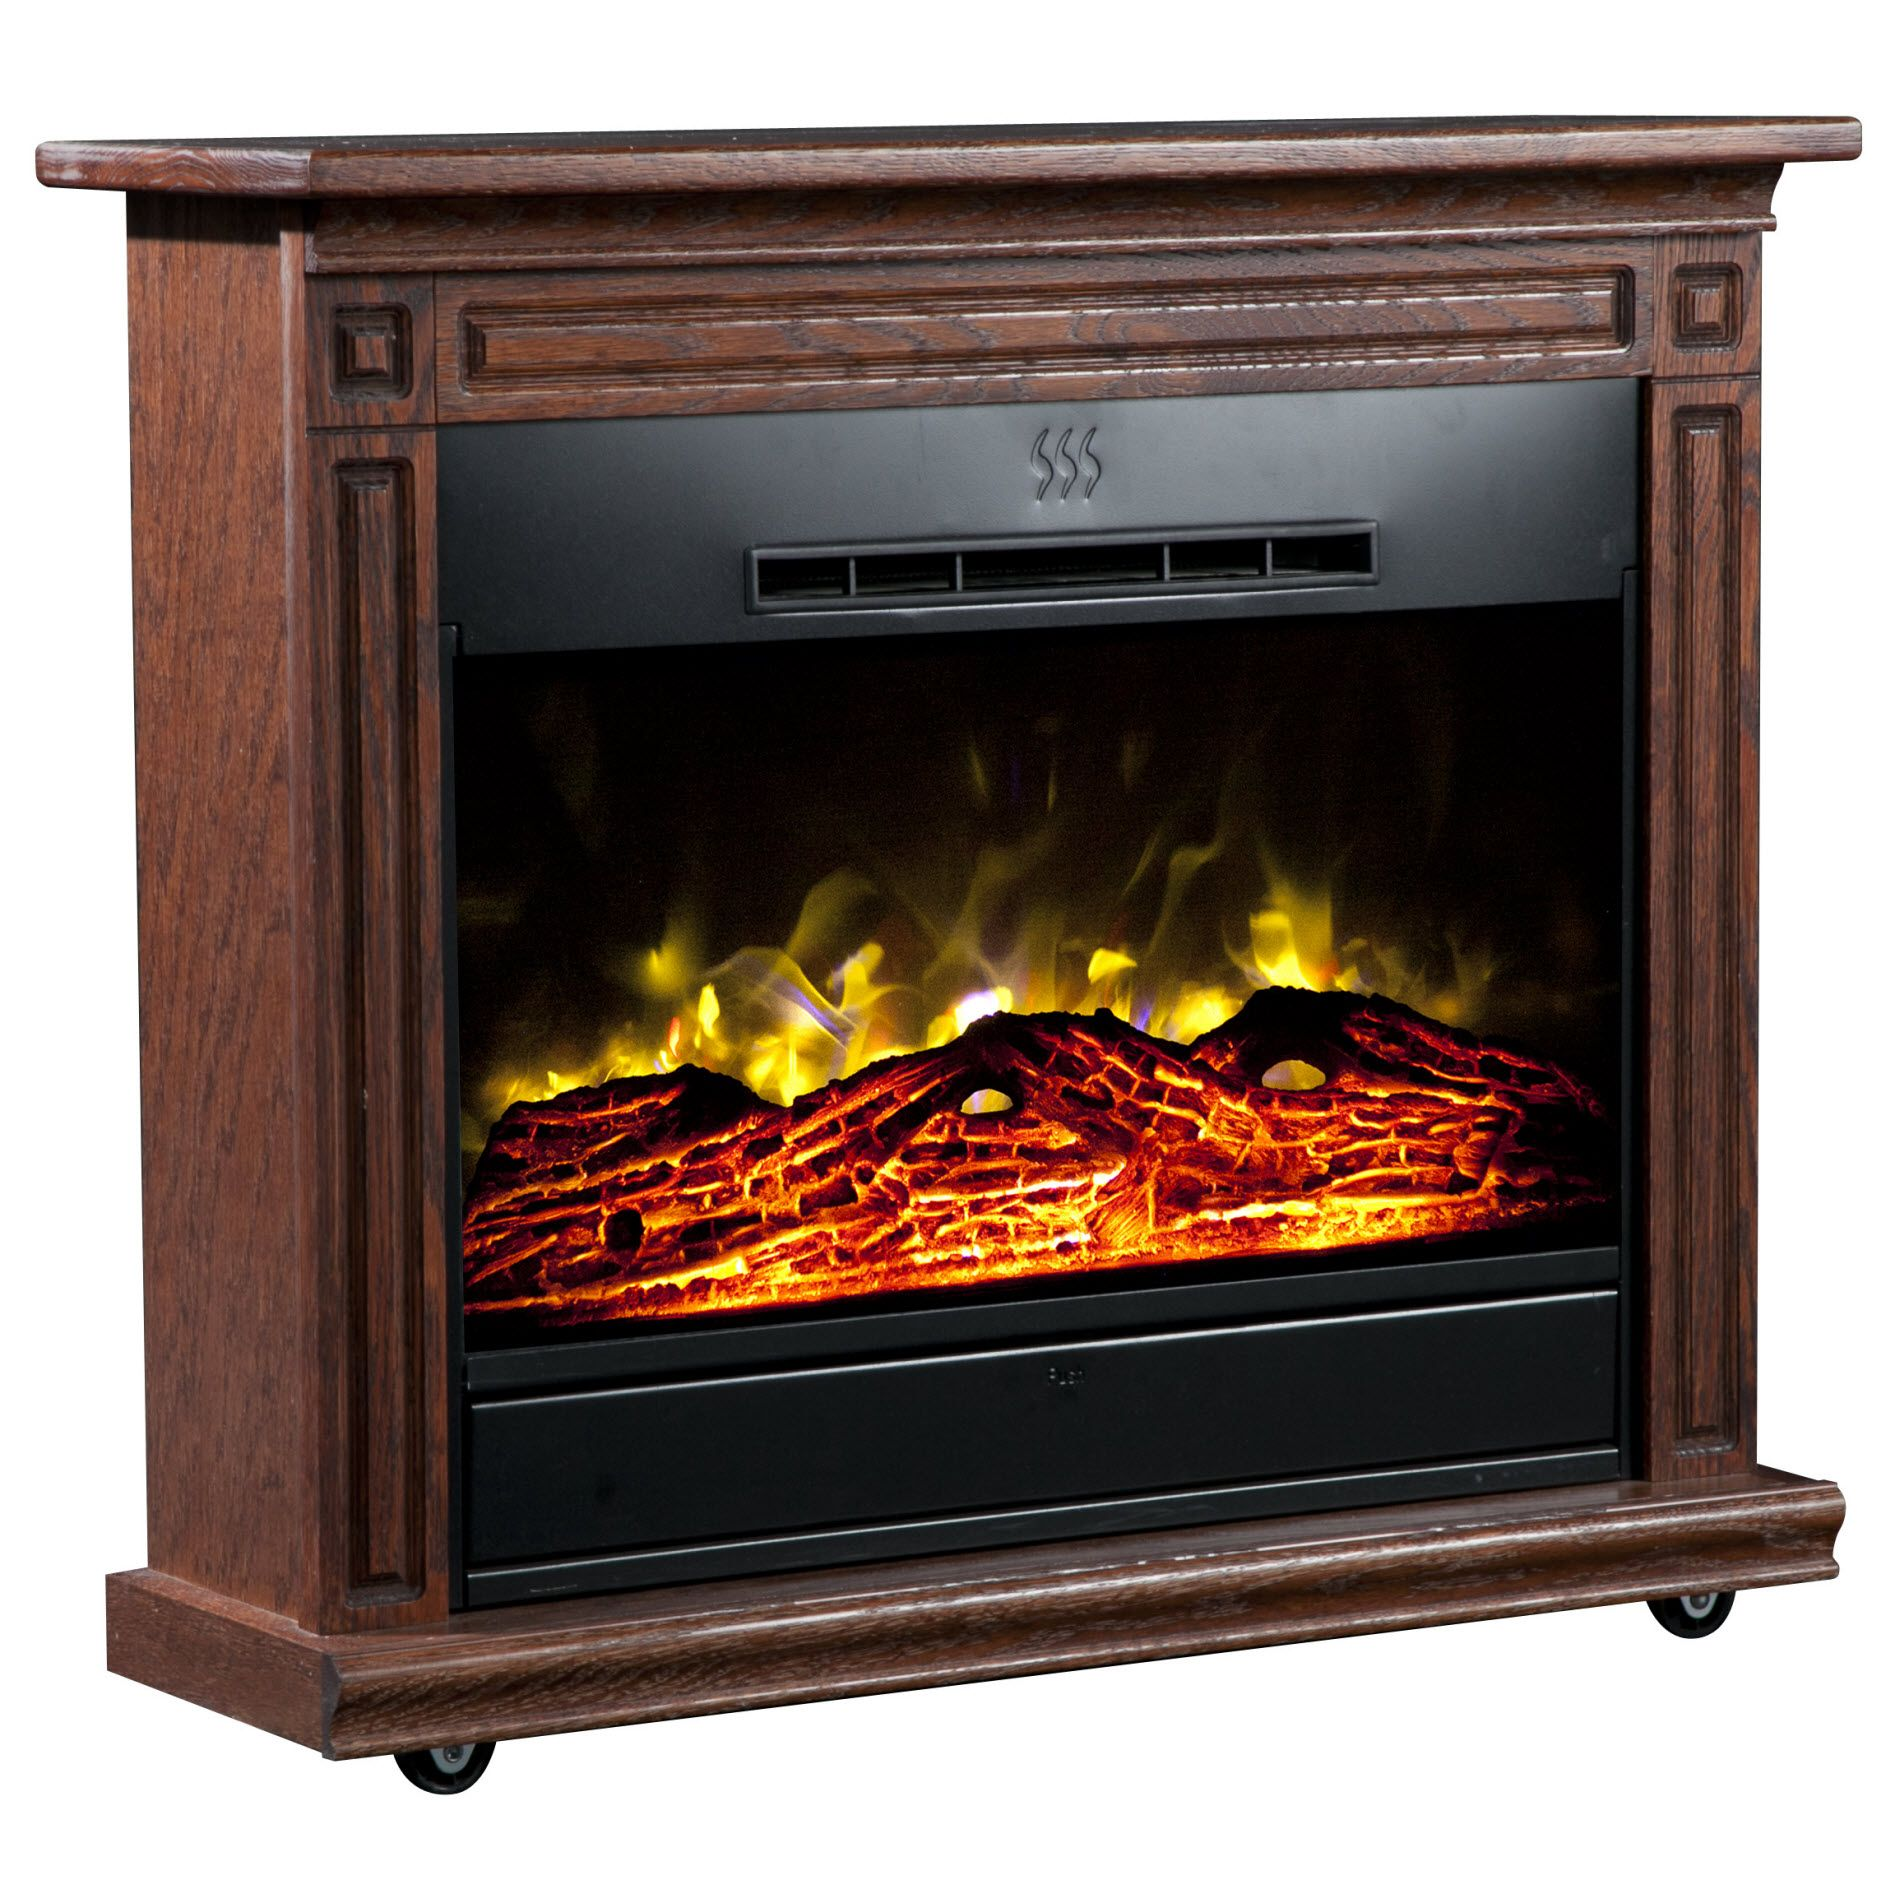 Heat Surge Roll-n-Glow Electric Fireplace - Dark Oak